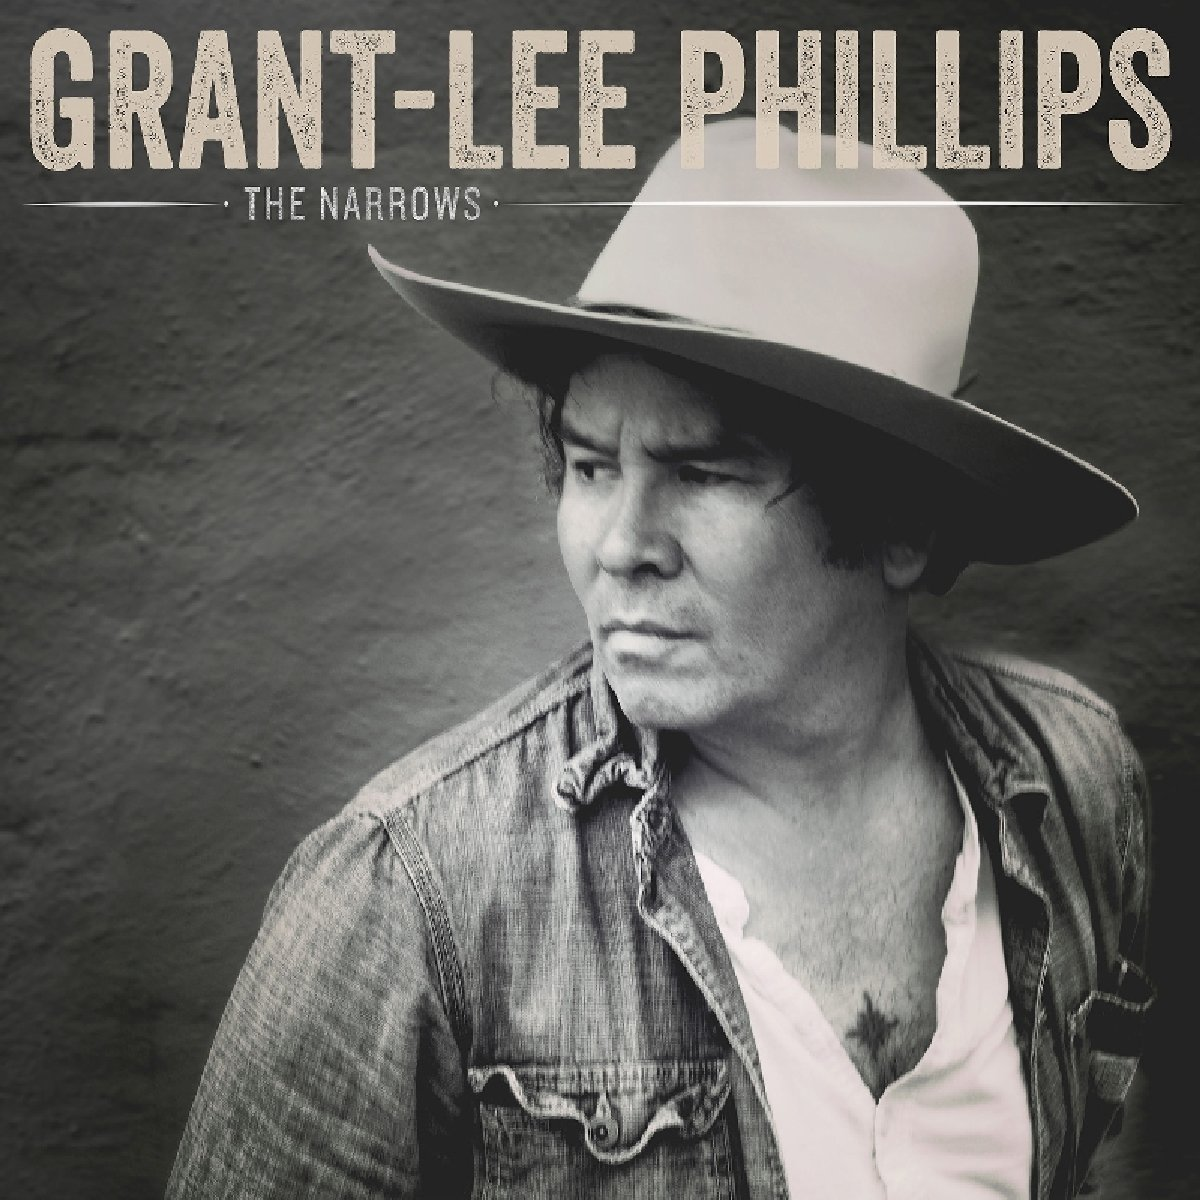 GRANT-LEE PHILLIPS RECORD STORIES